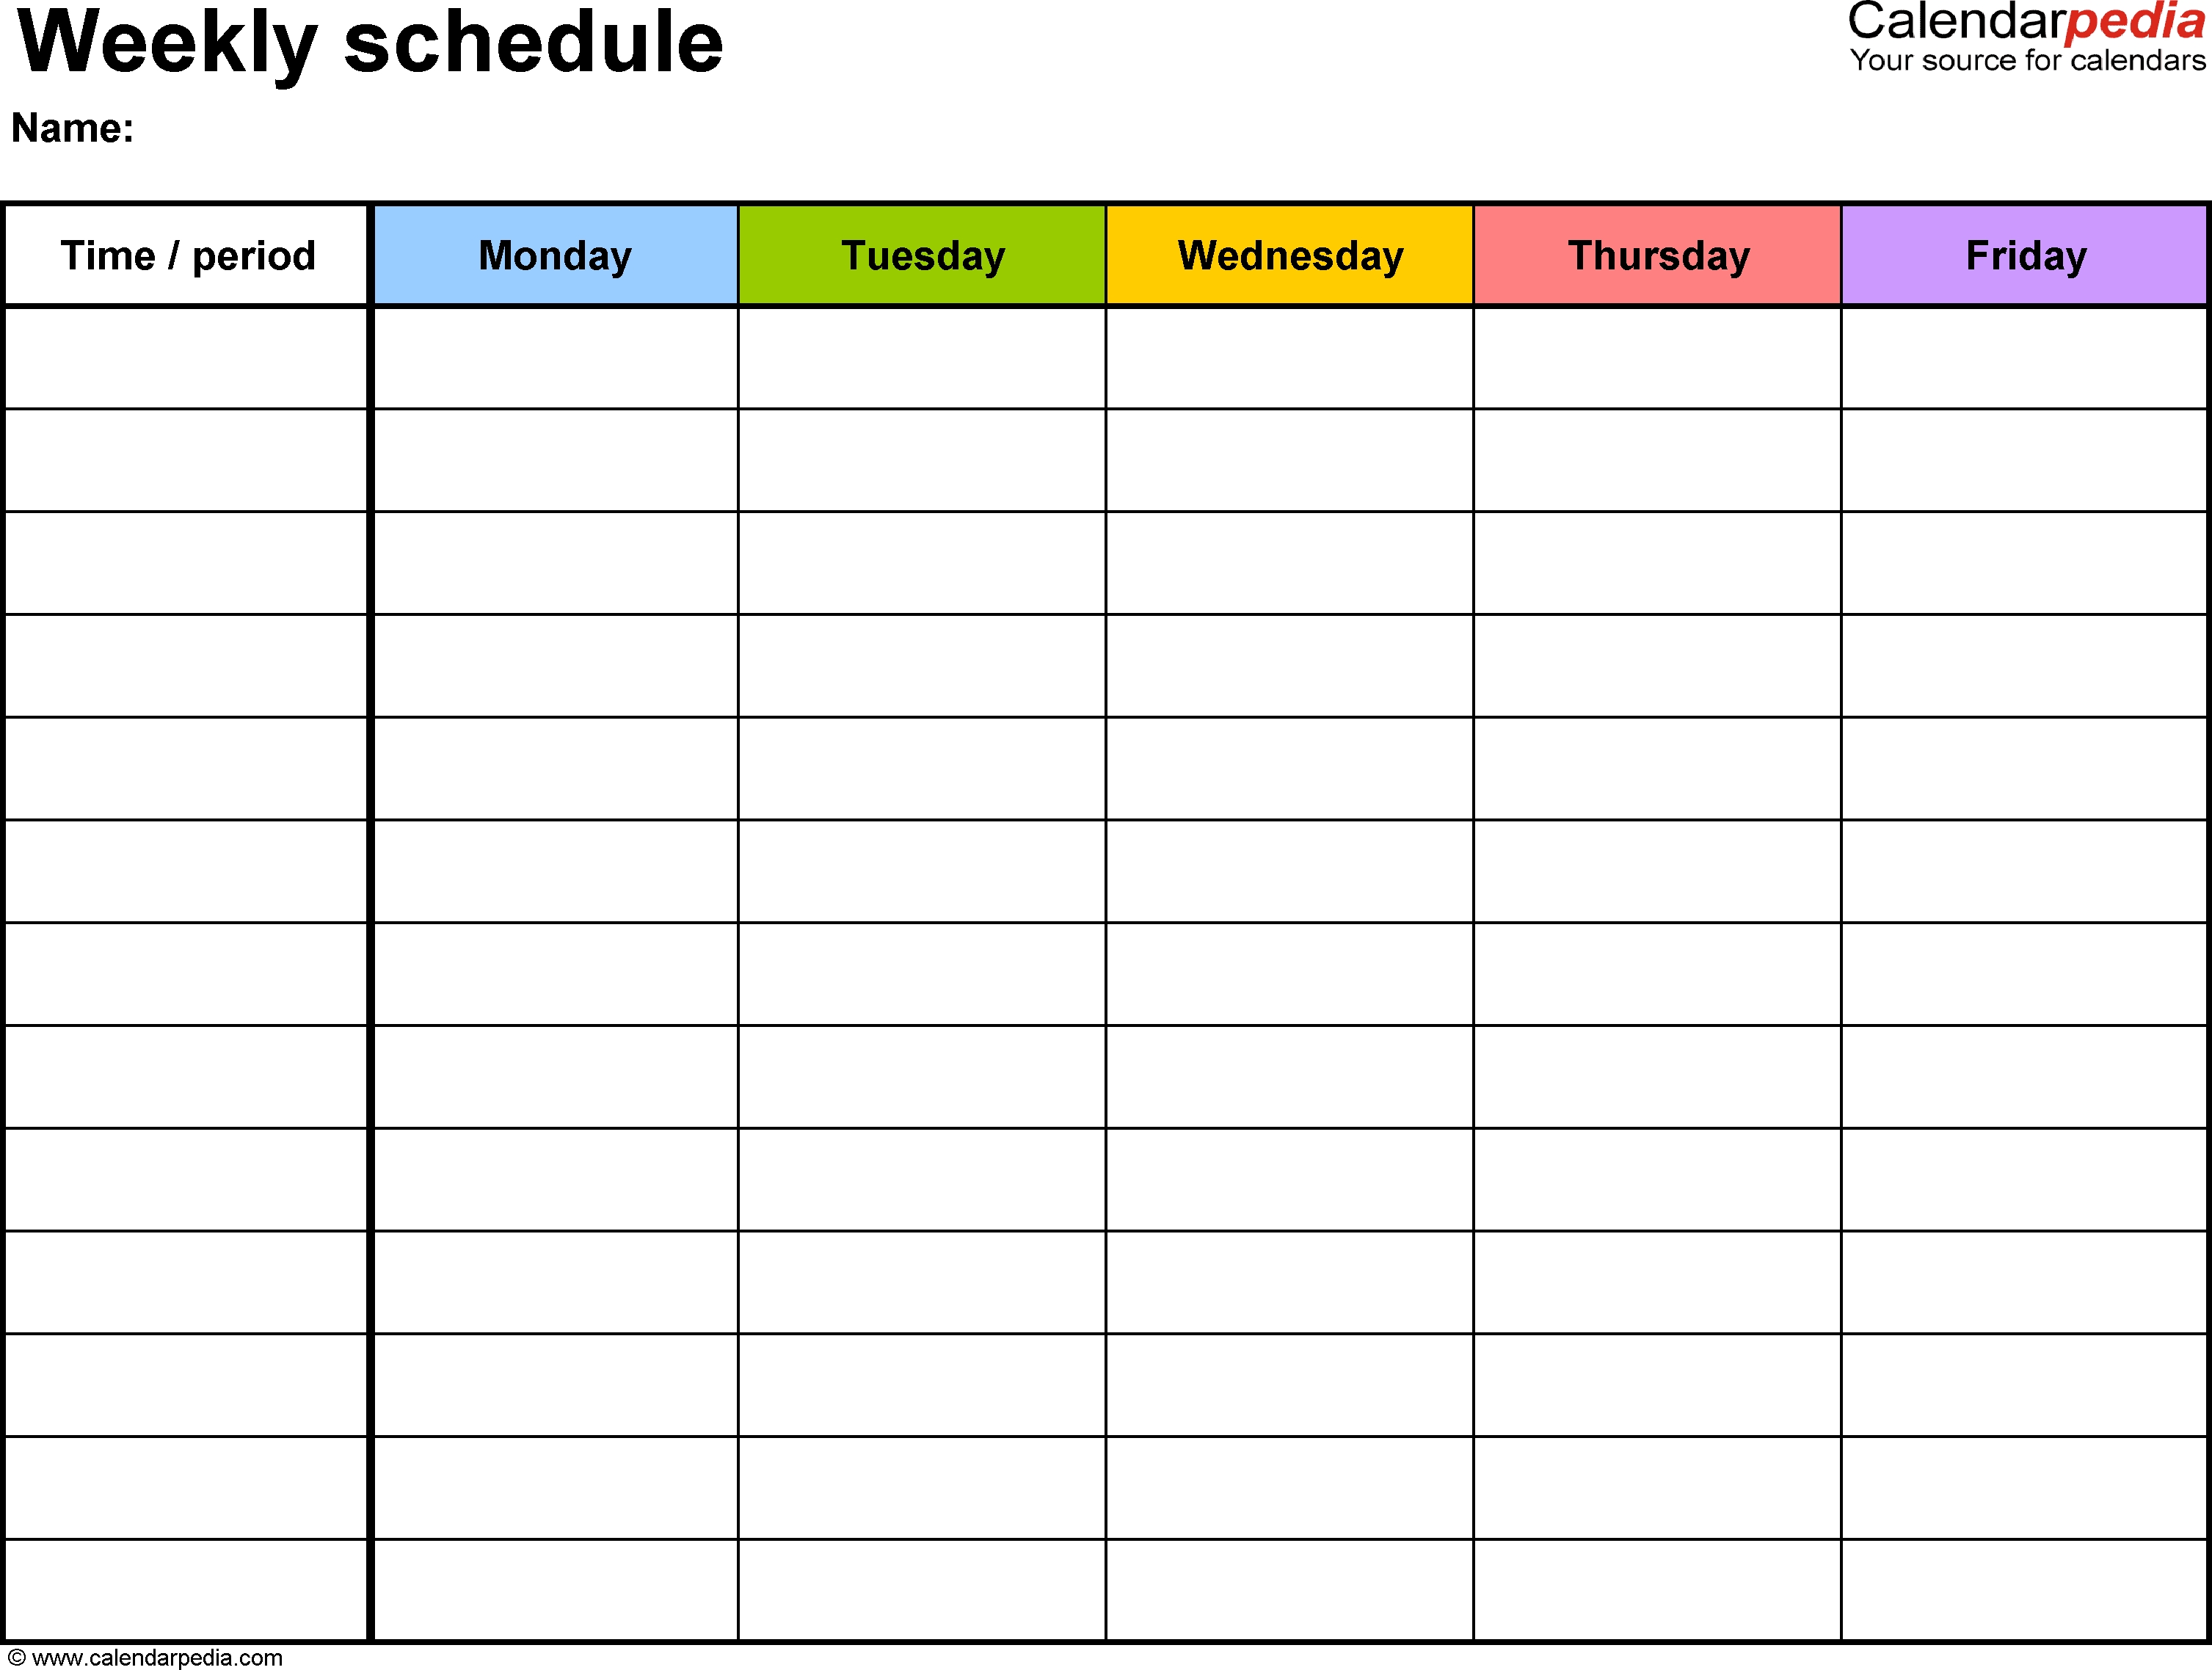 Free Weekly Schedule Templates For Excel - 18 Templates pertaining to Two Week Monday To Friday Calendars